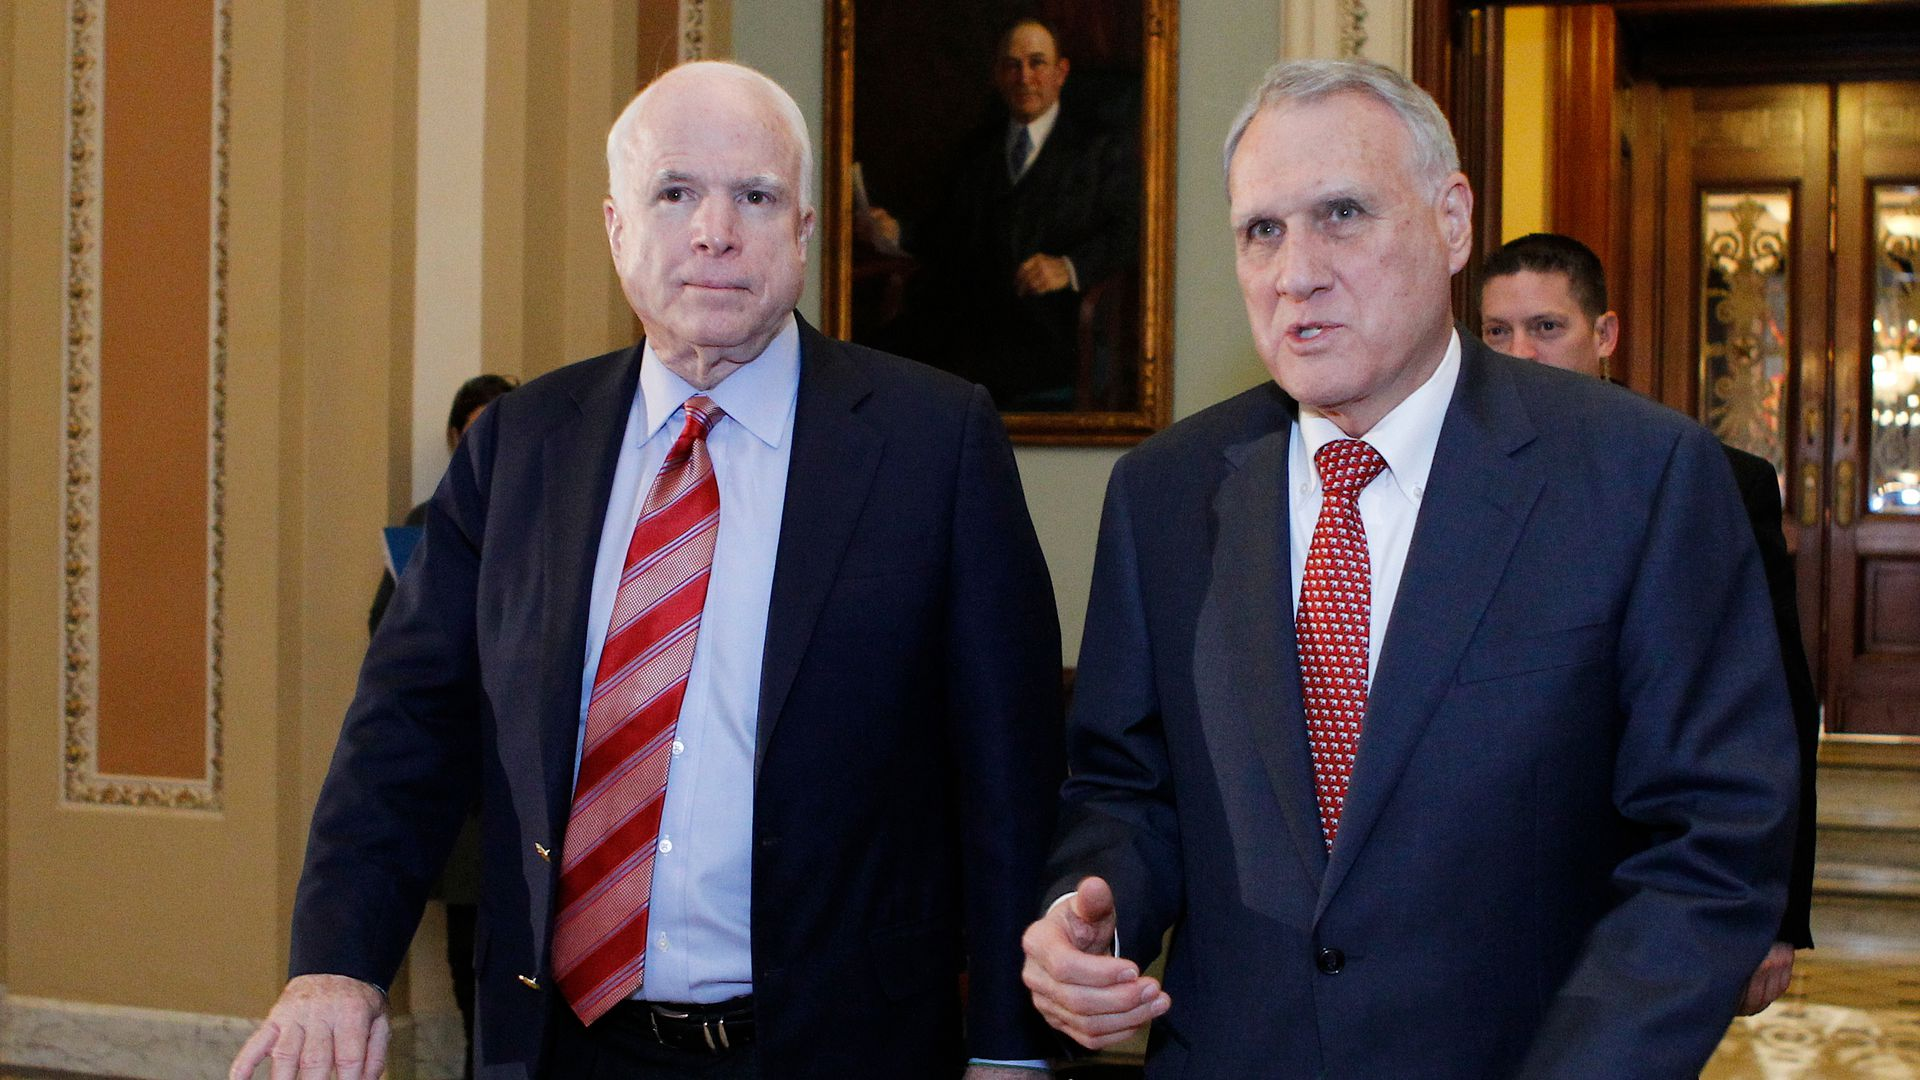 John McCain and Jon Kyl walking in Senate.